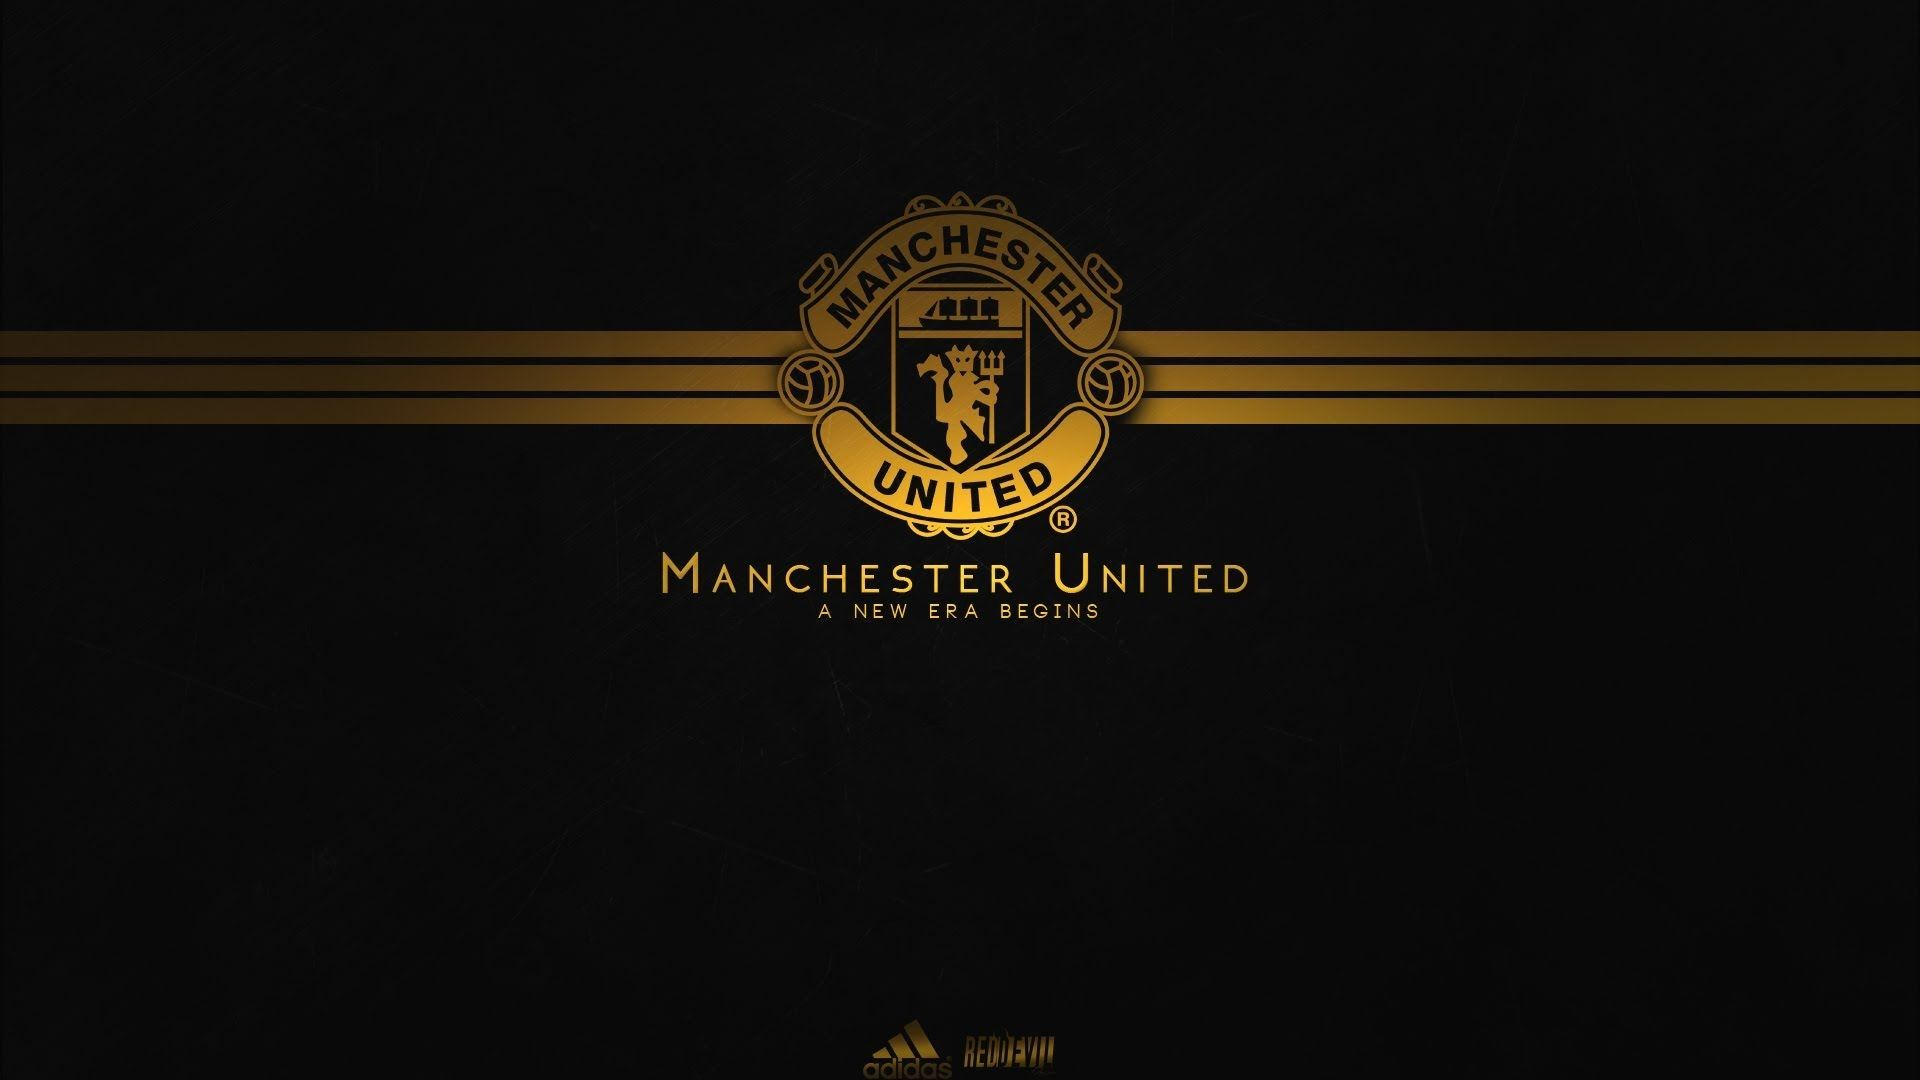 Manchester United Laptop Wallpapers On Wallpaperdog